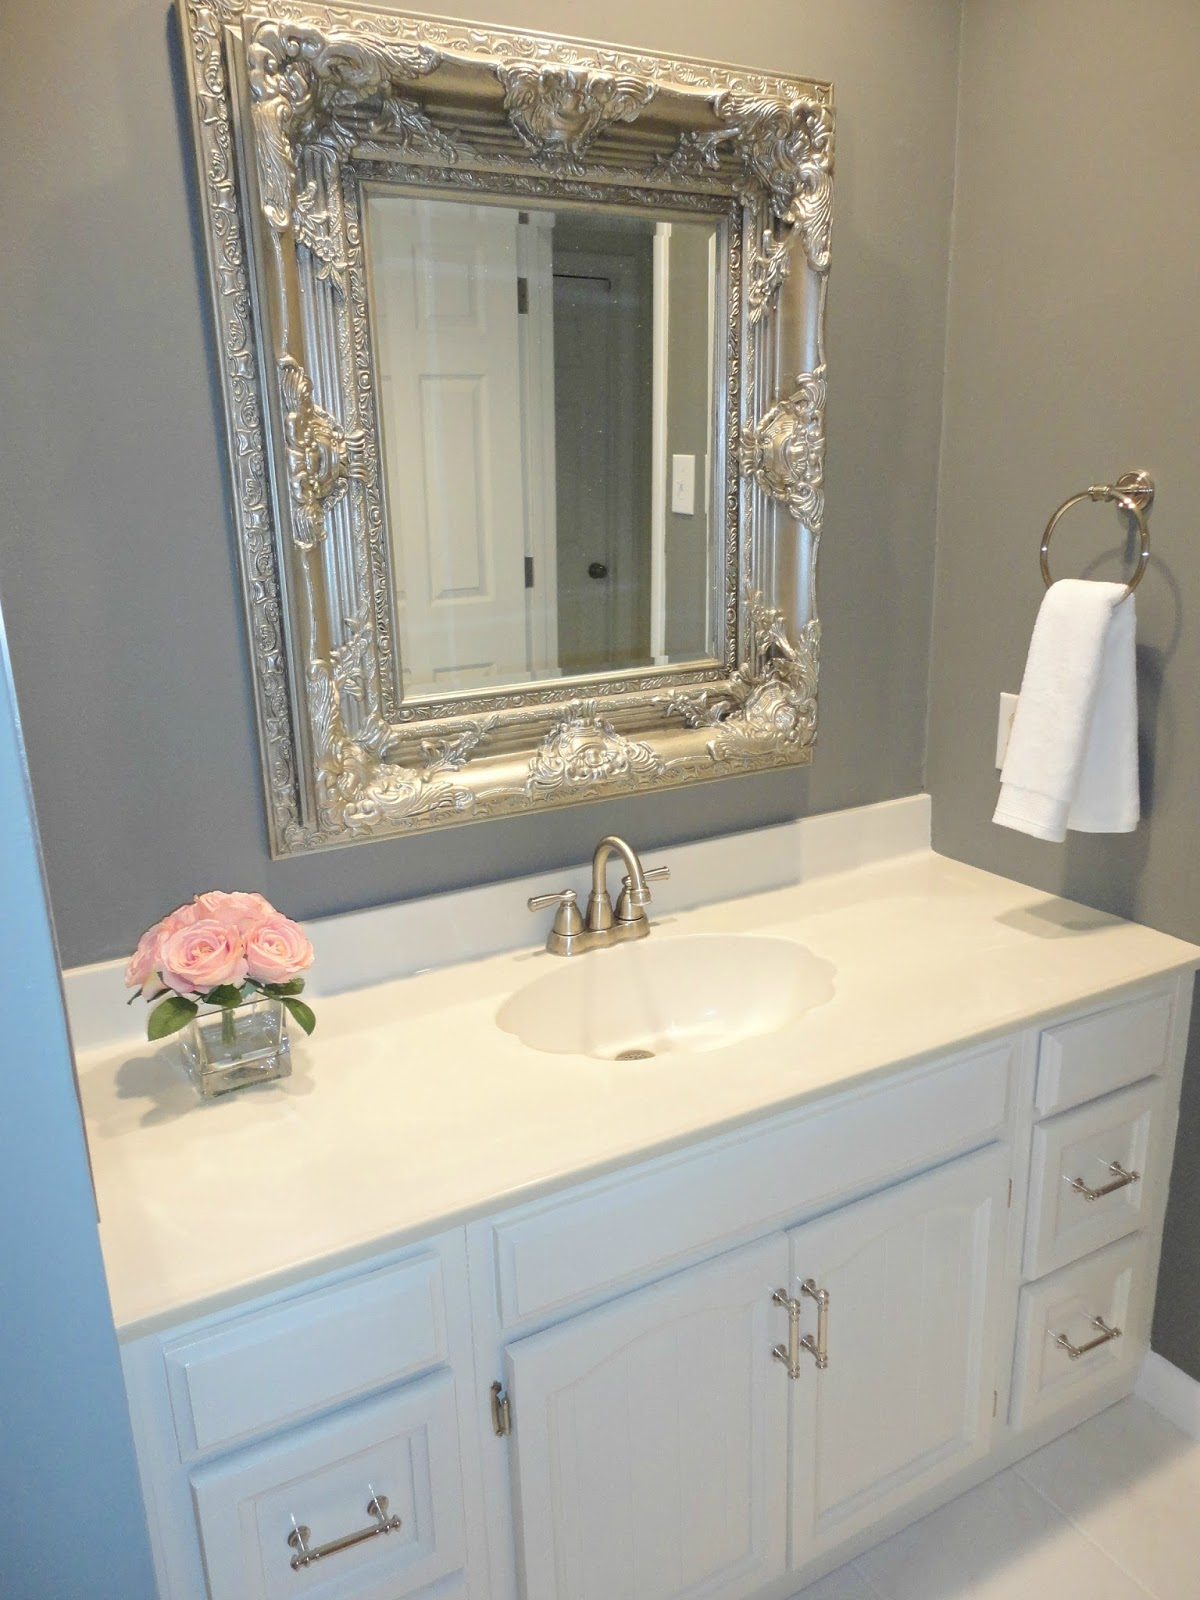 Bathroom Remodeling Diy livelovediy: diy bathroom remodel on a budget